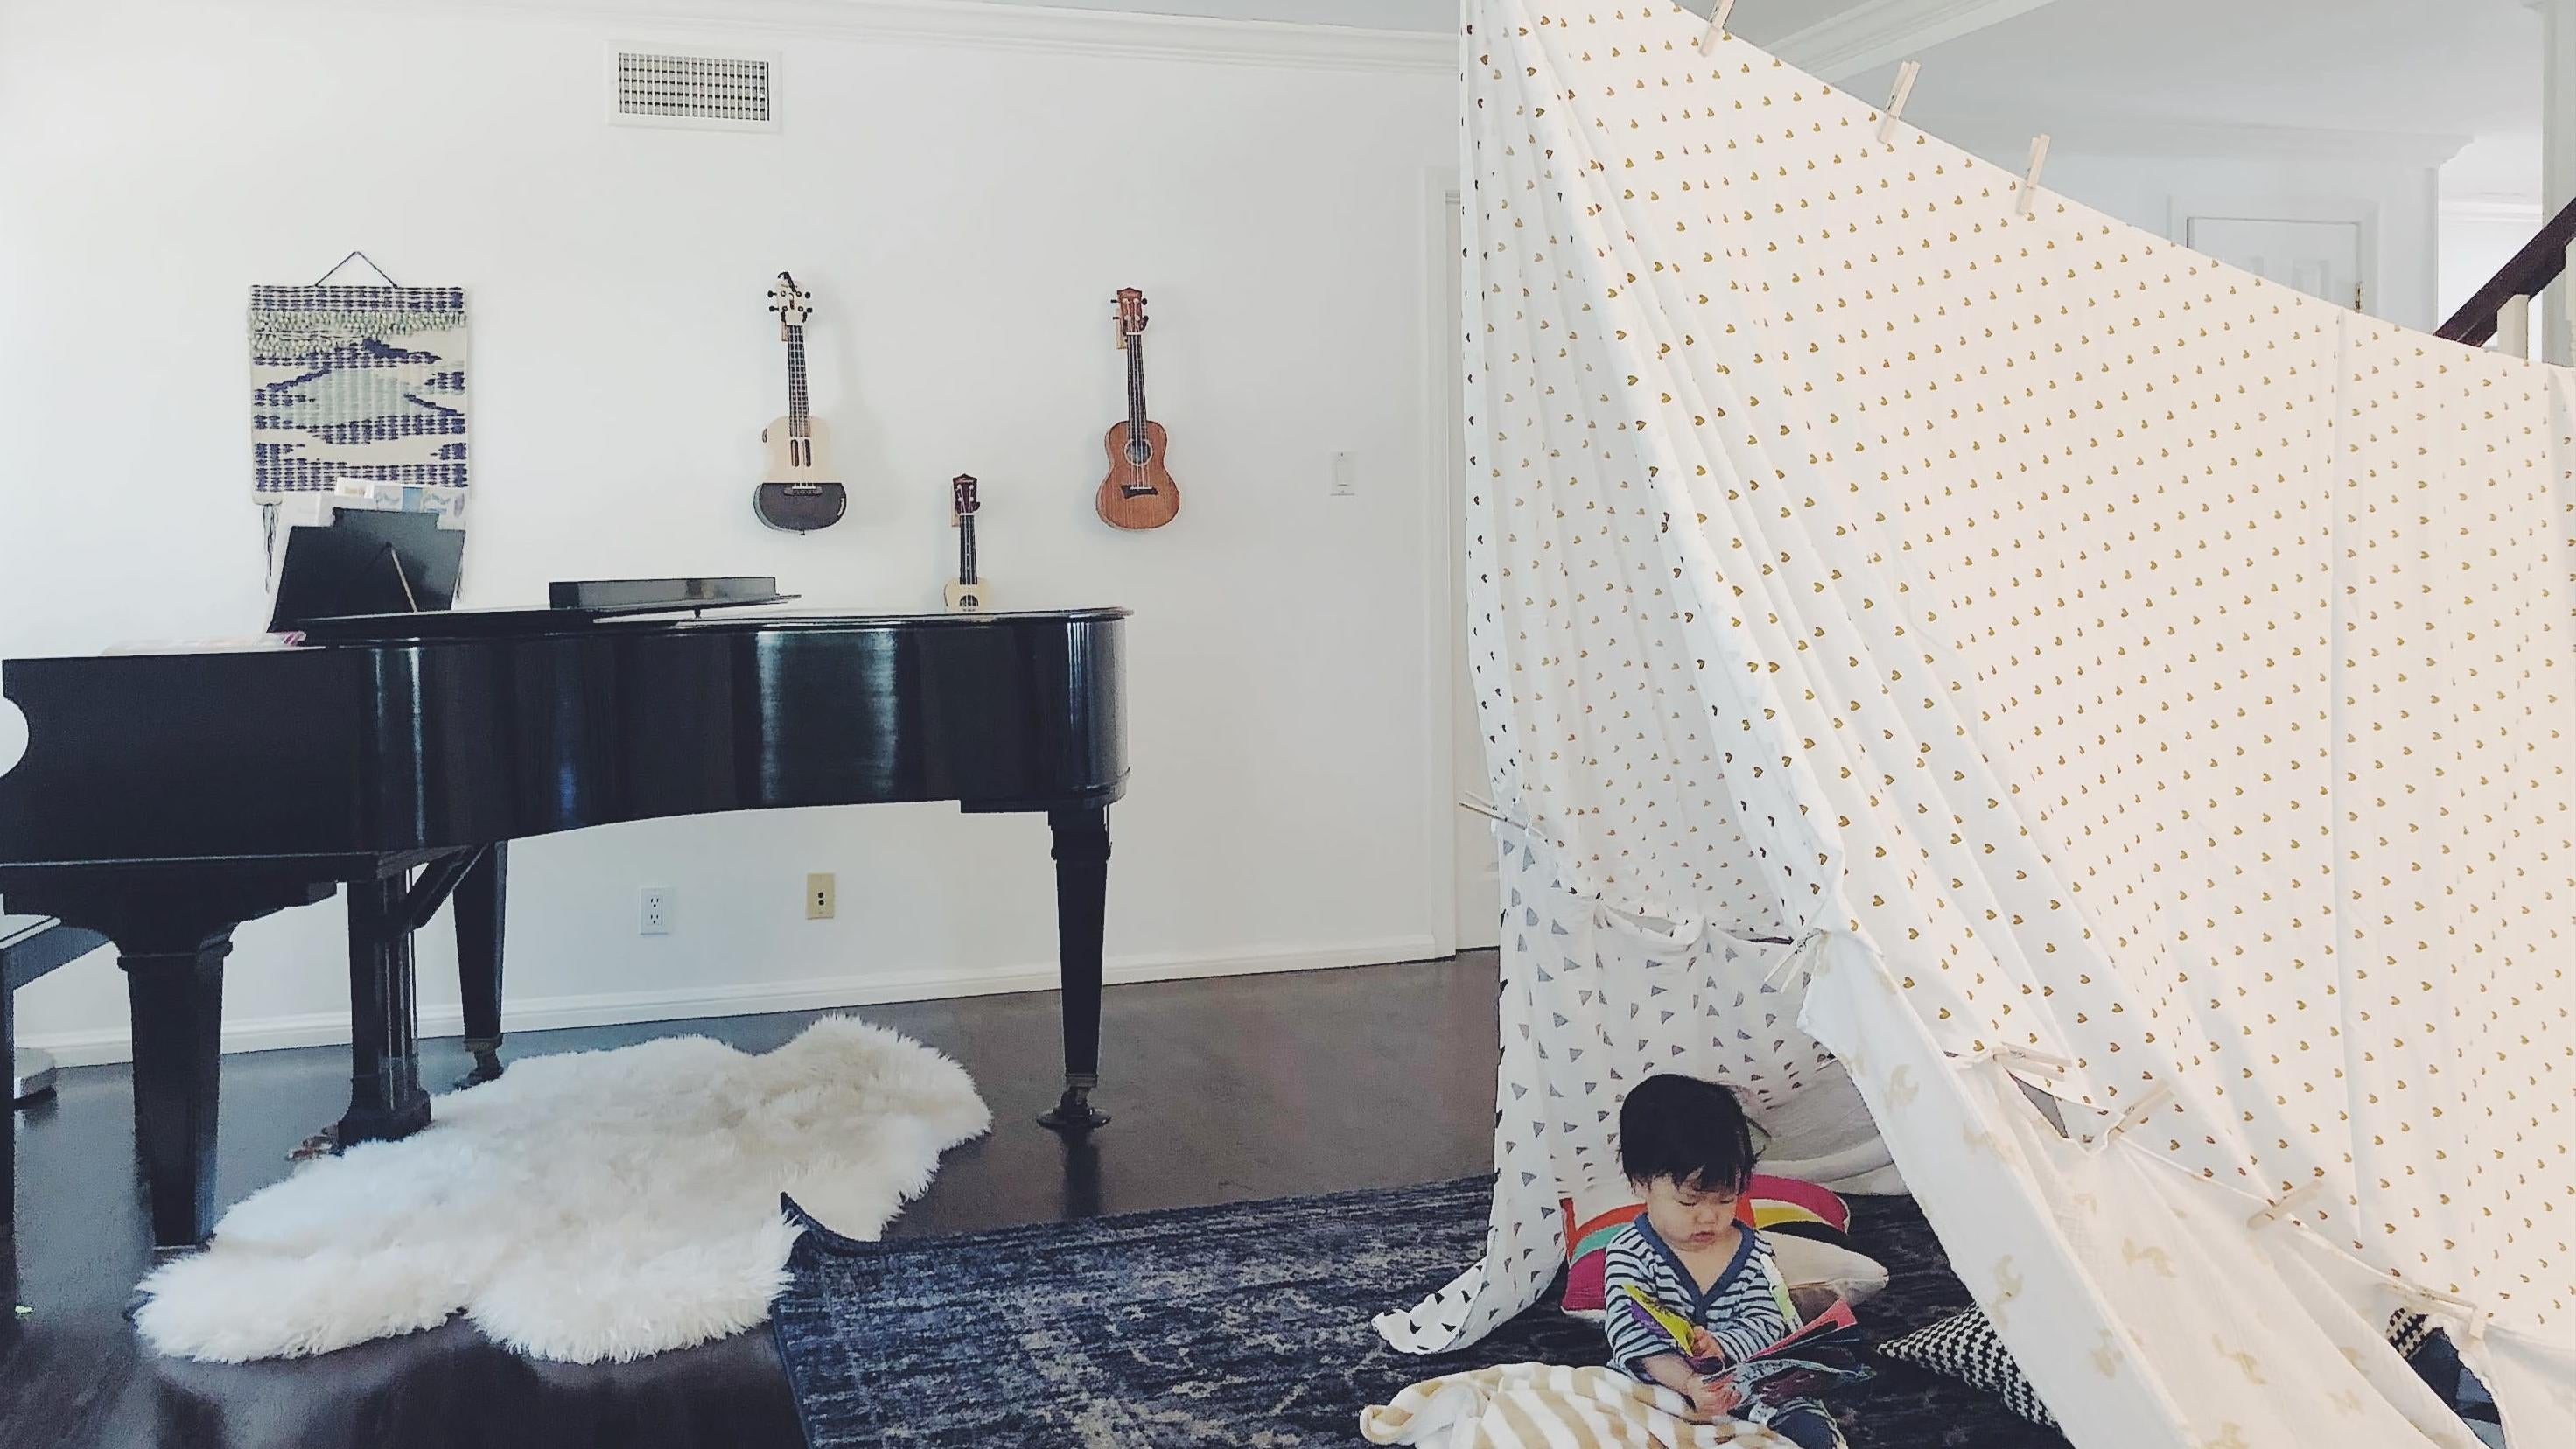 Make A Blanket Fort Using Command Hooks